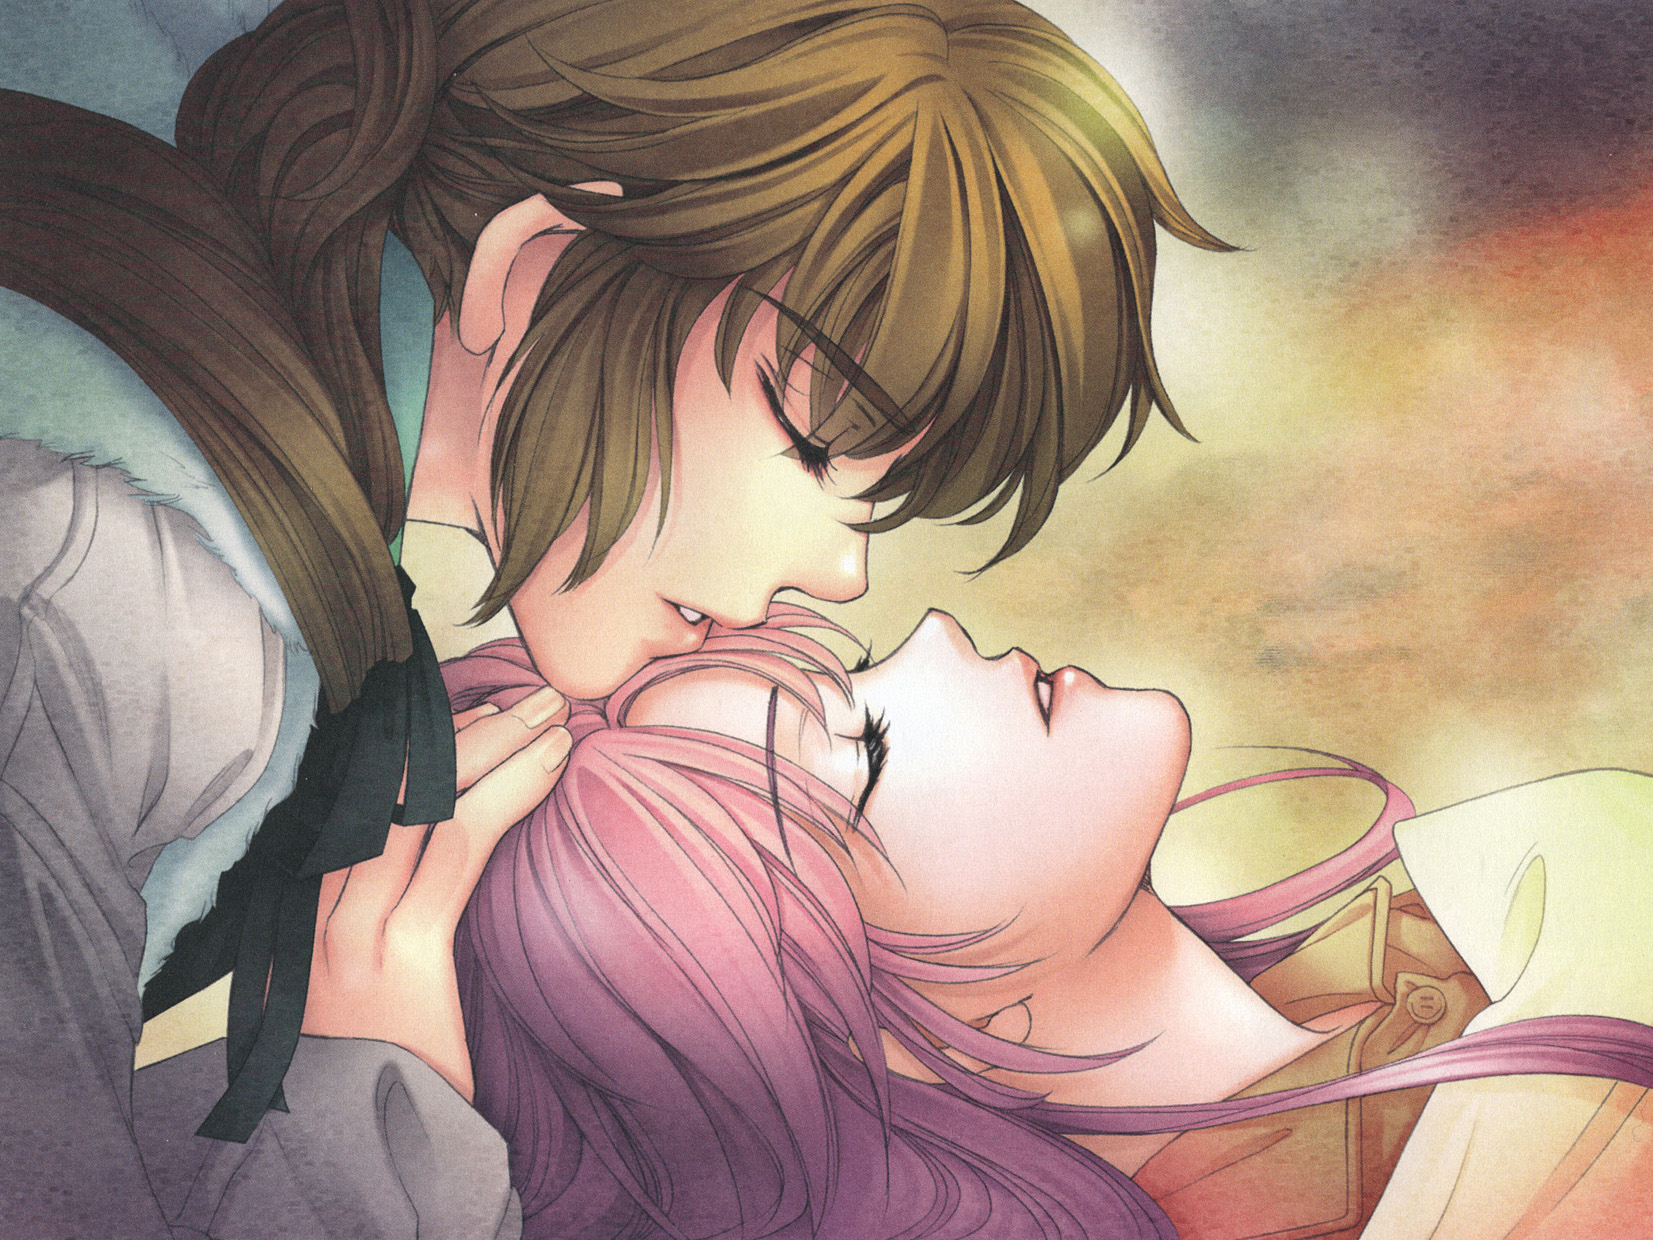 Anime porn images ib hd xxx download